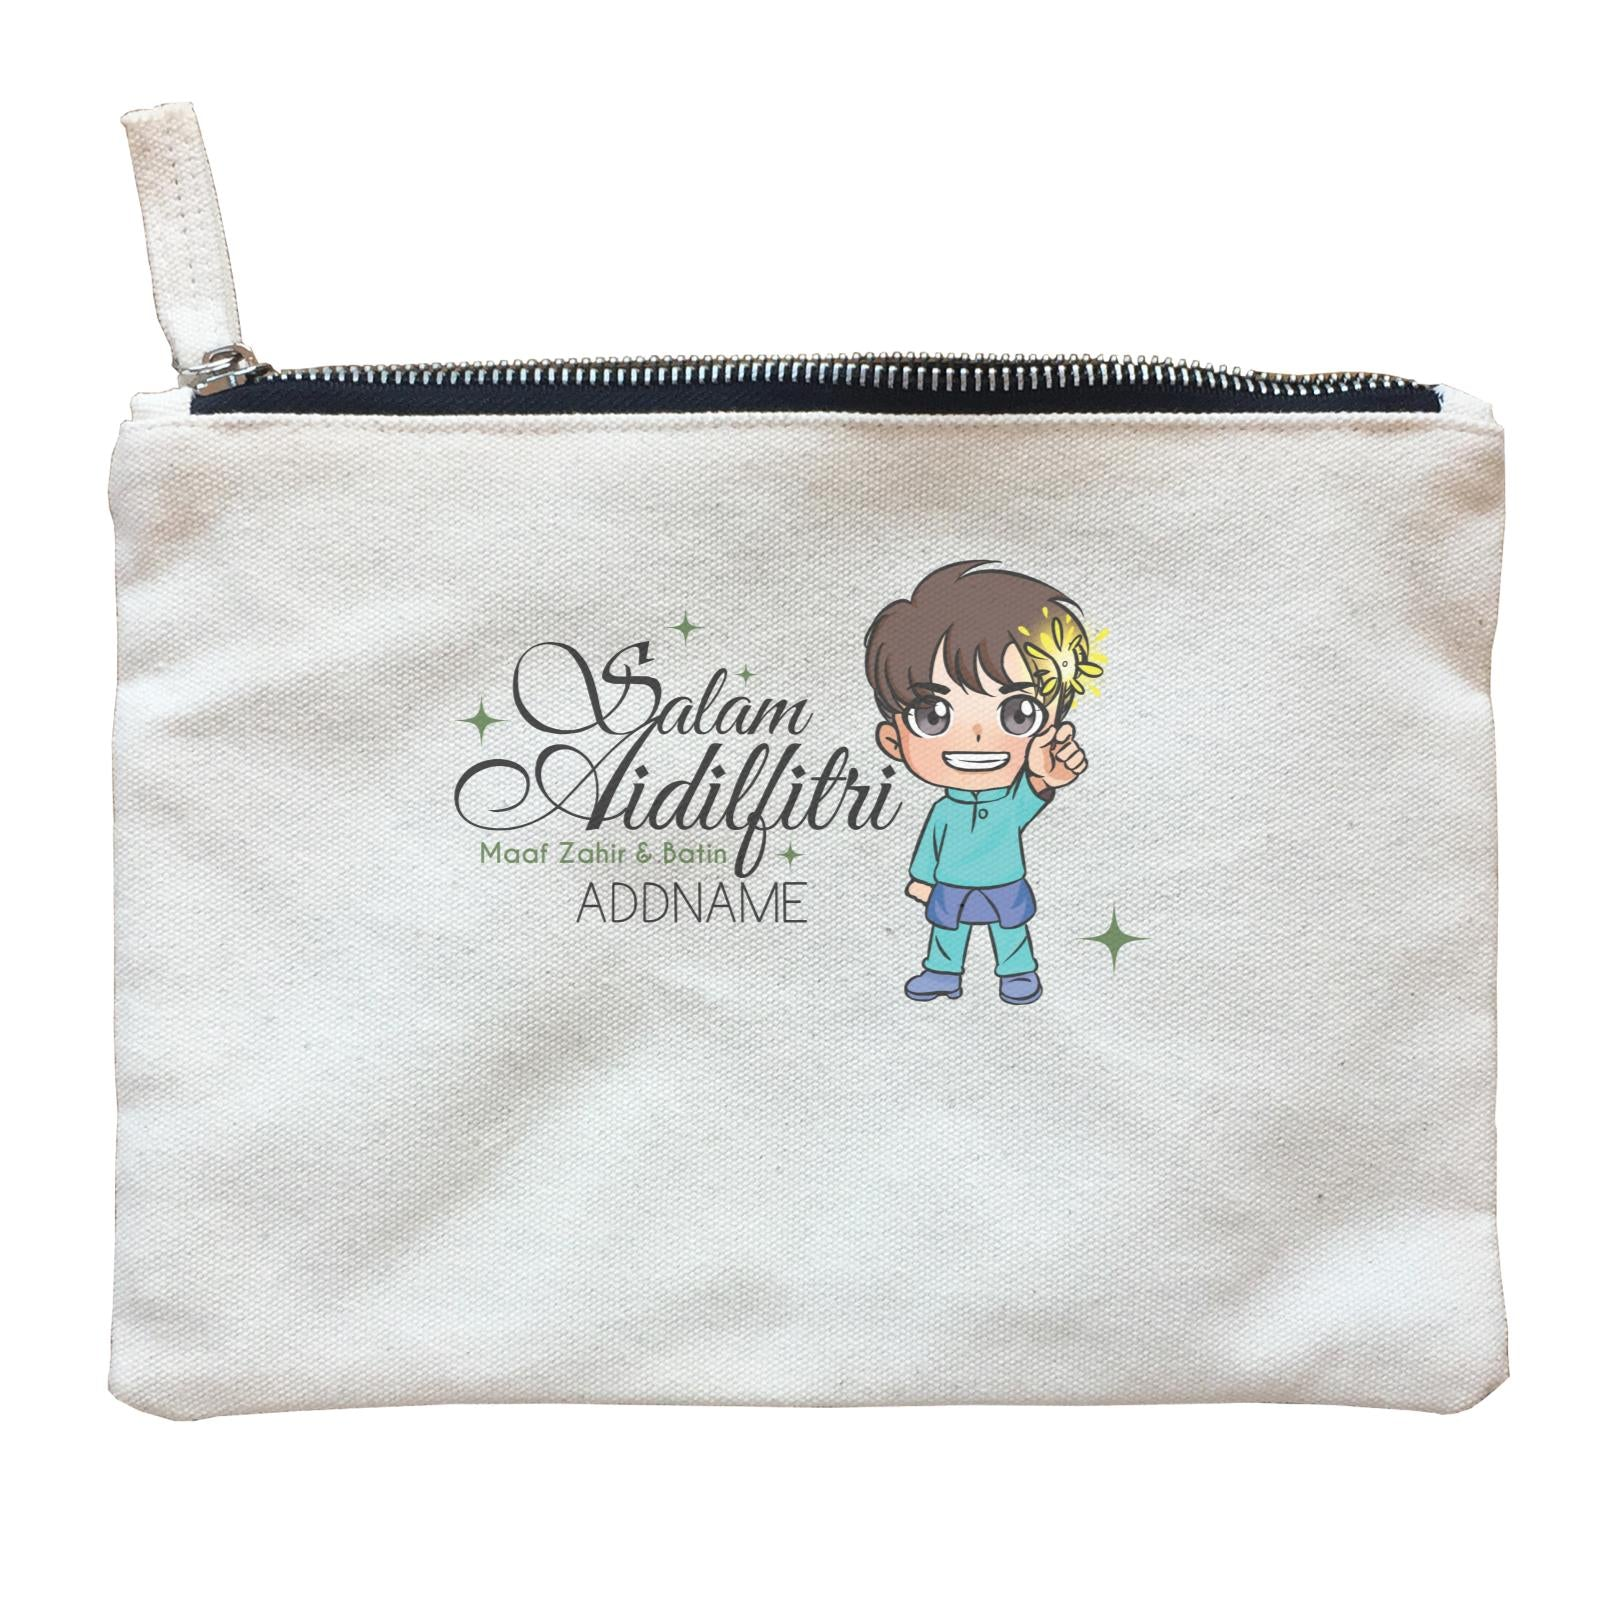 Raya Chibi Wishes Little Boy Addname Wishes Everyone Salam Aidilfitri Maaf Zahir & Batin Zipper Pouch